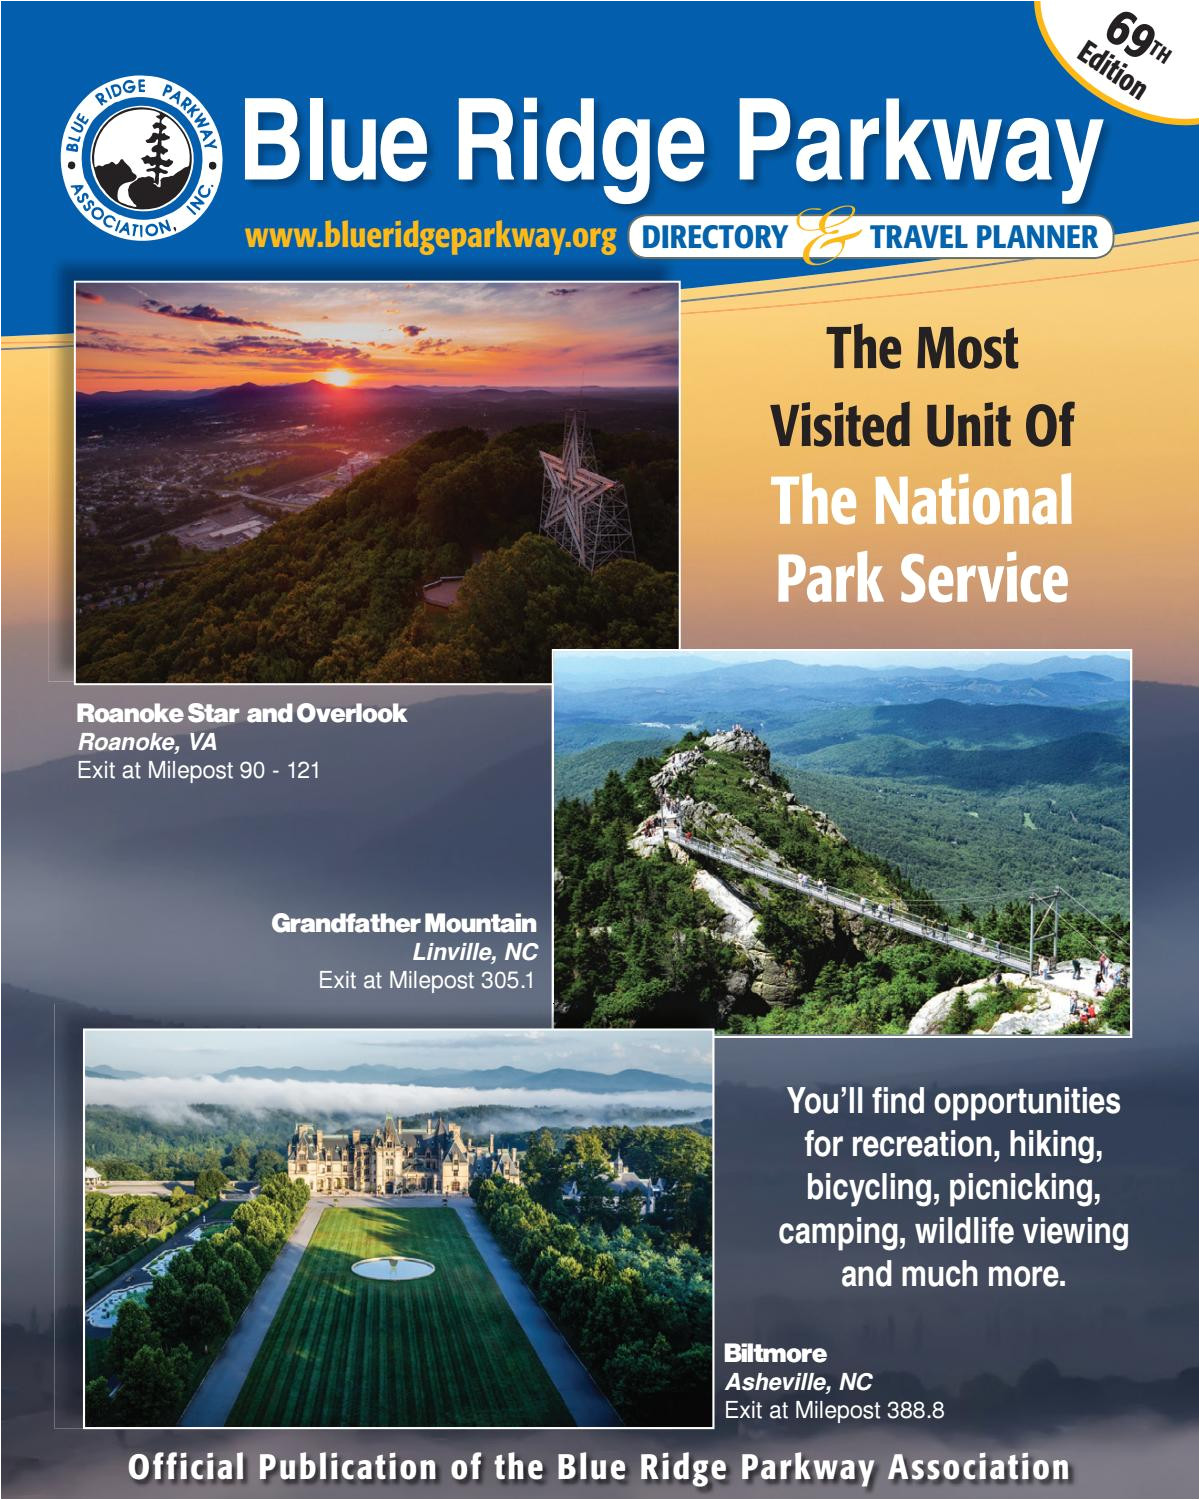 blue ridge parkway directory travel planner 69th edition by blue ridge parkway association issuu